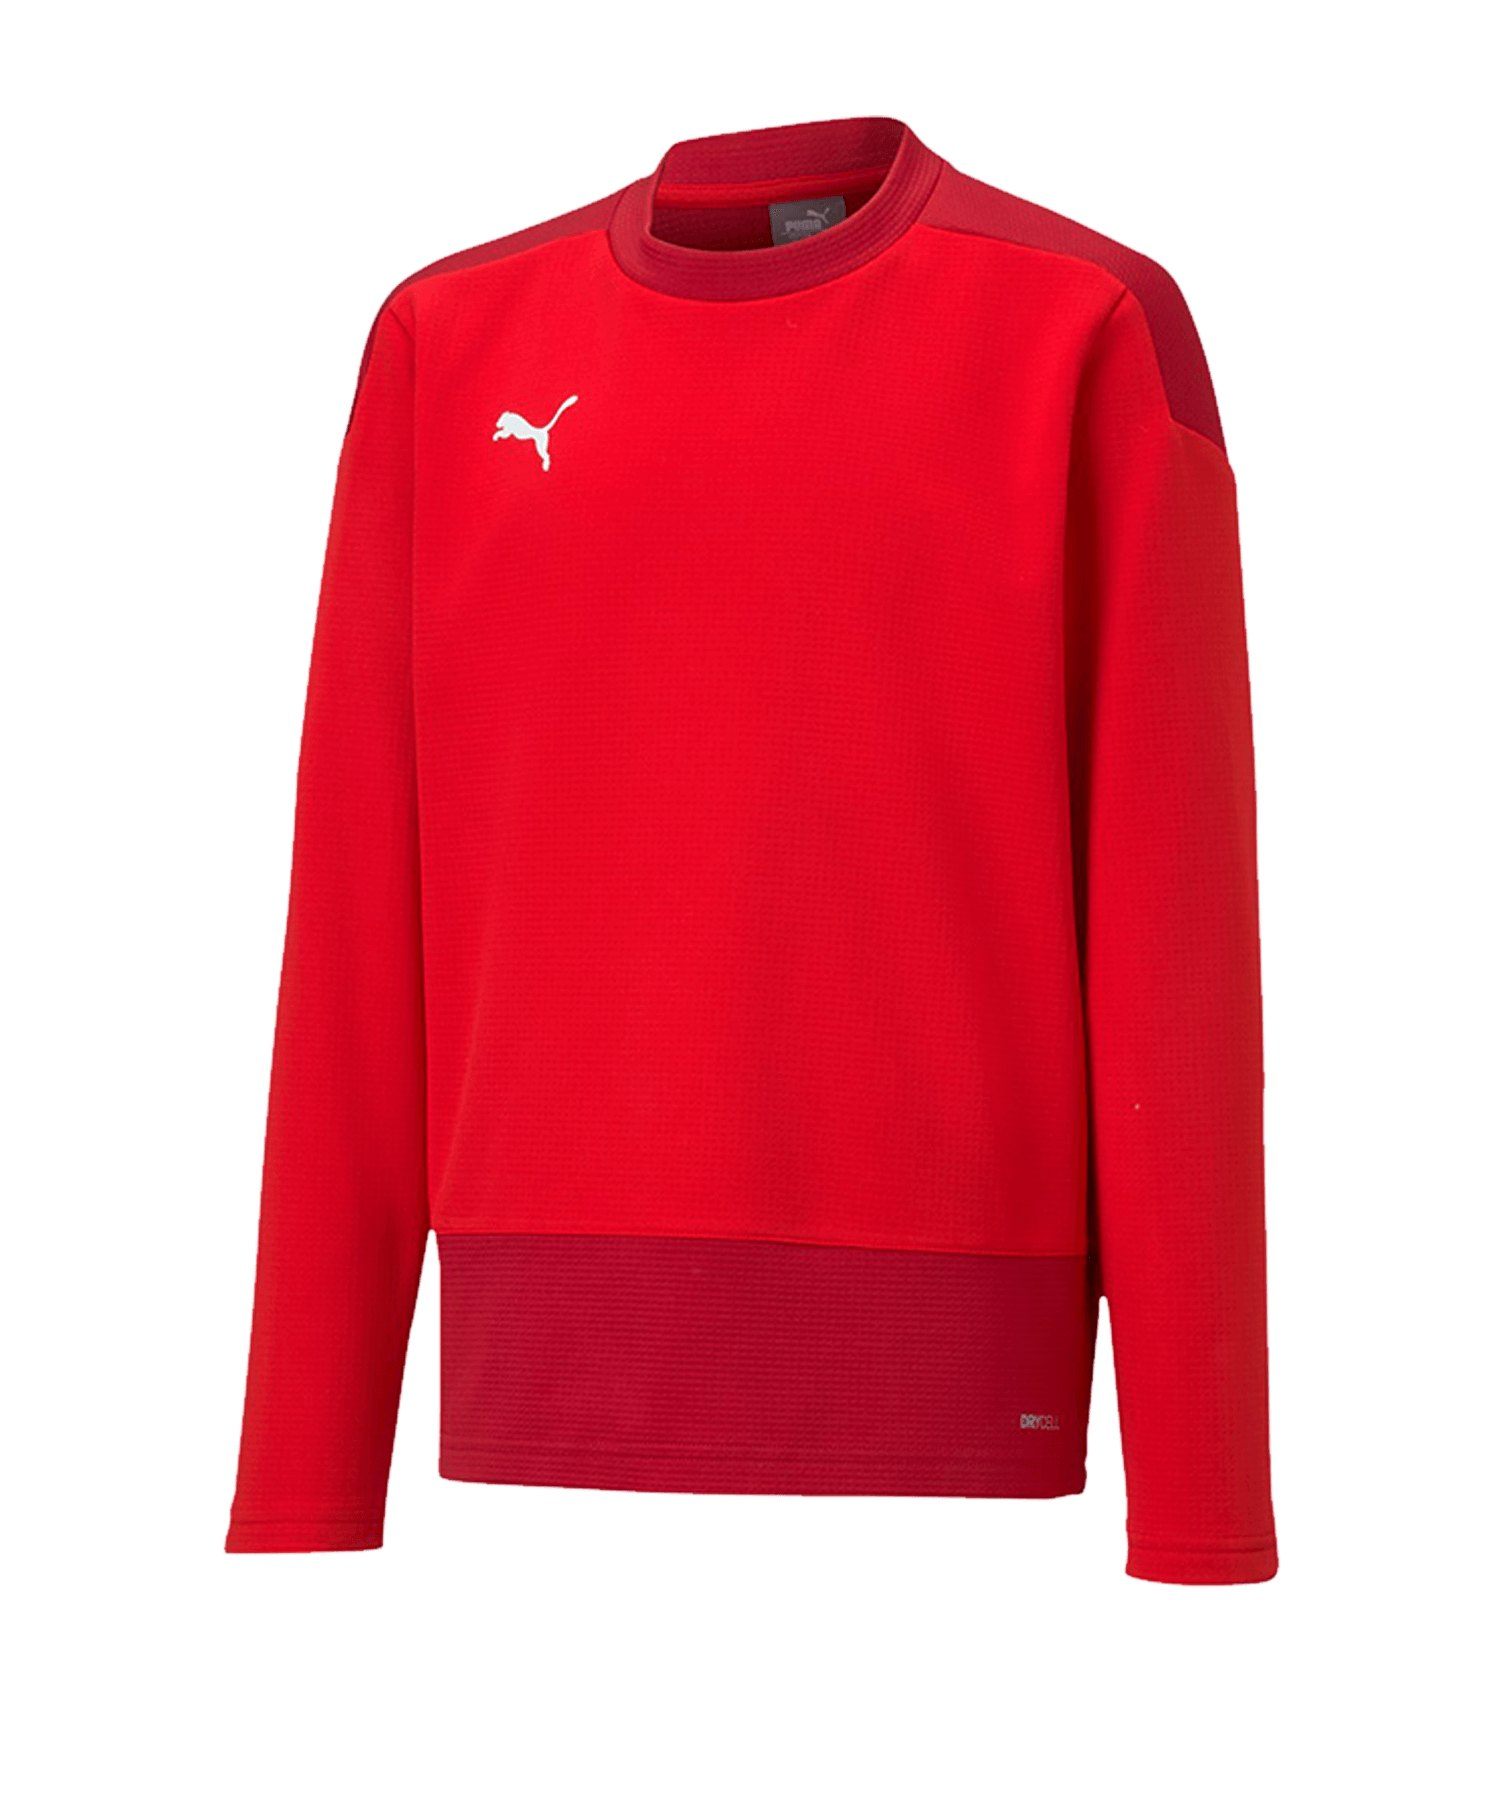 PUMA teamGOAL 23 Training Sweatshirt Kids Rot F01 - rot